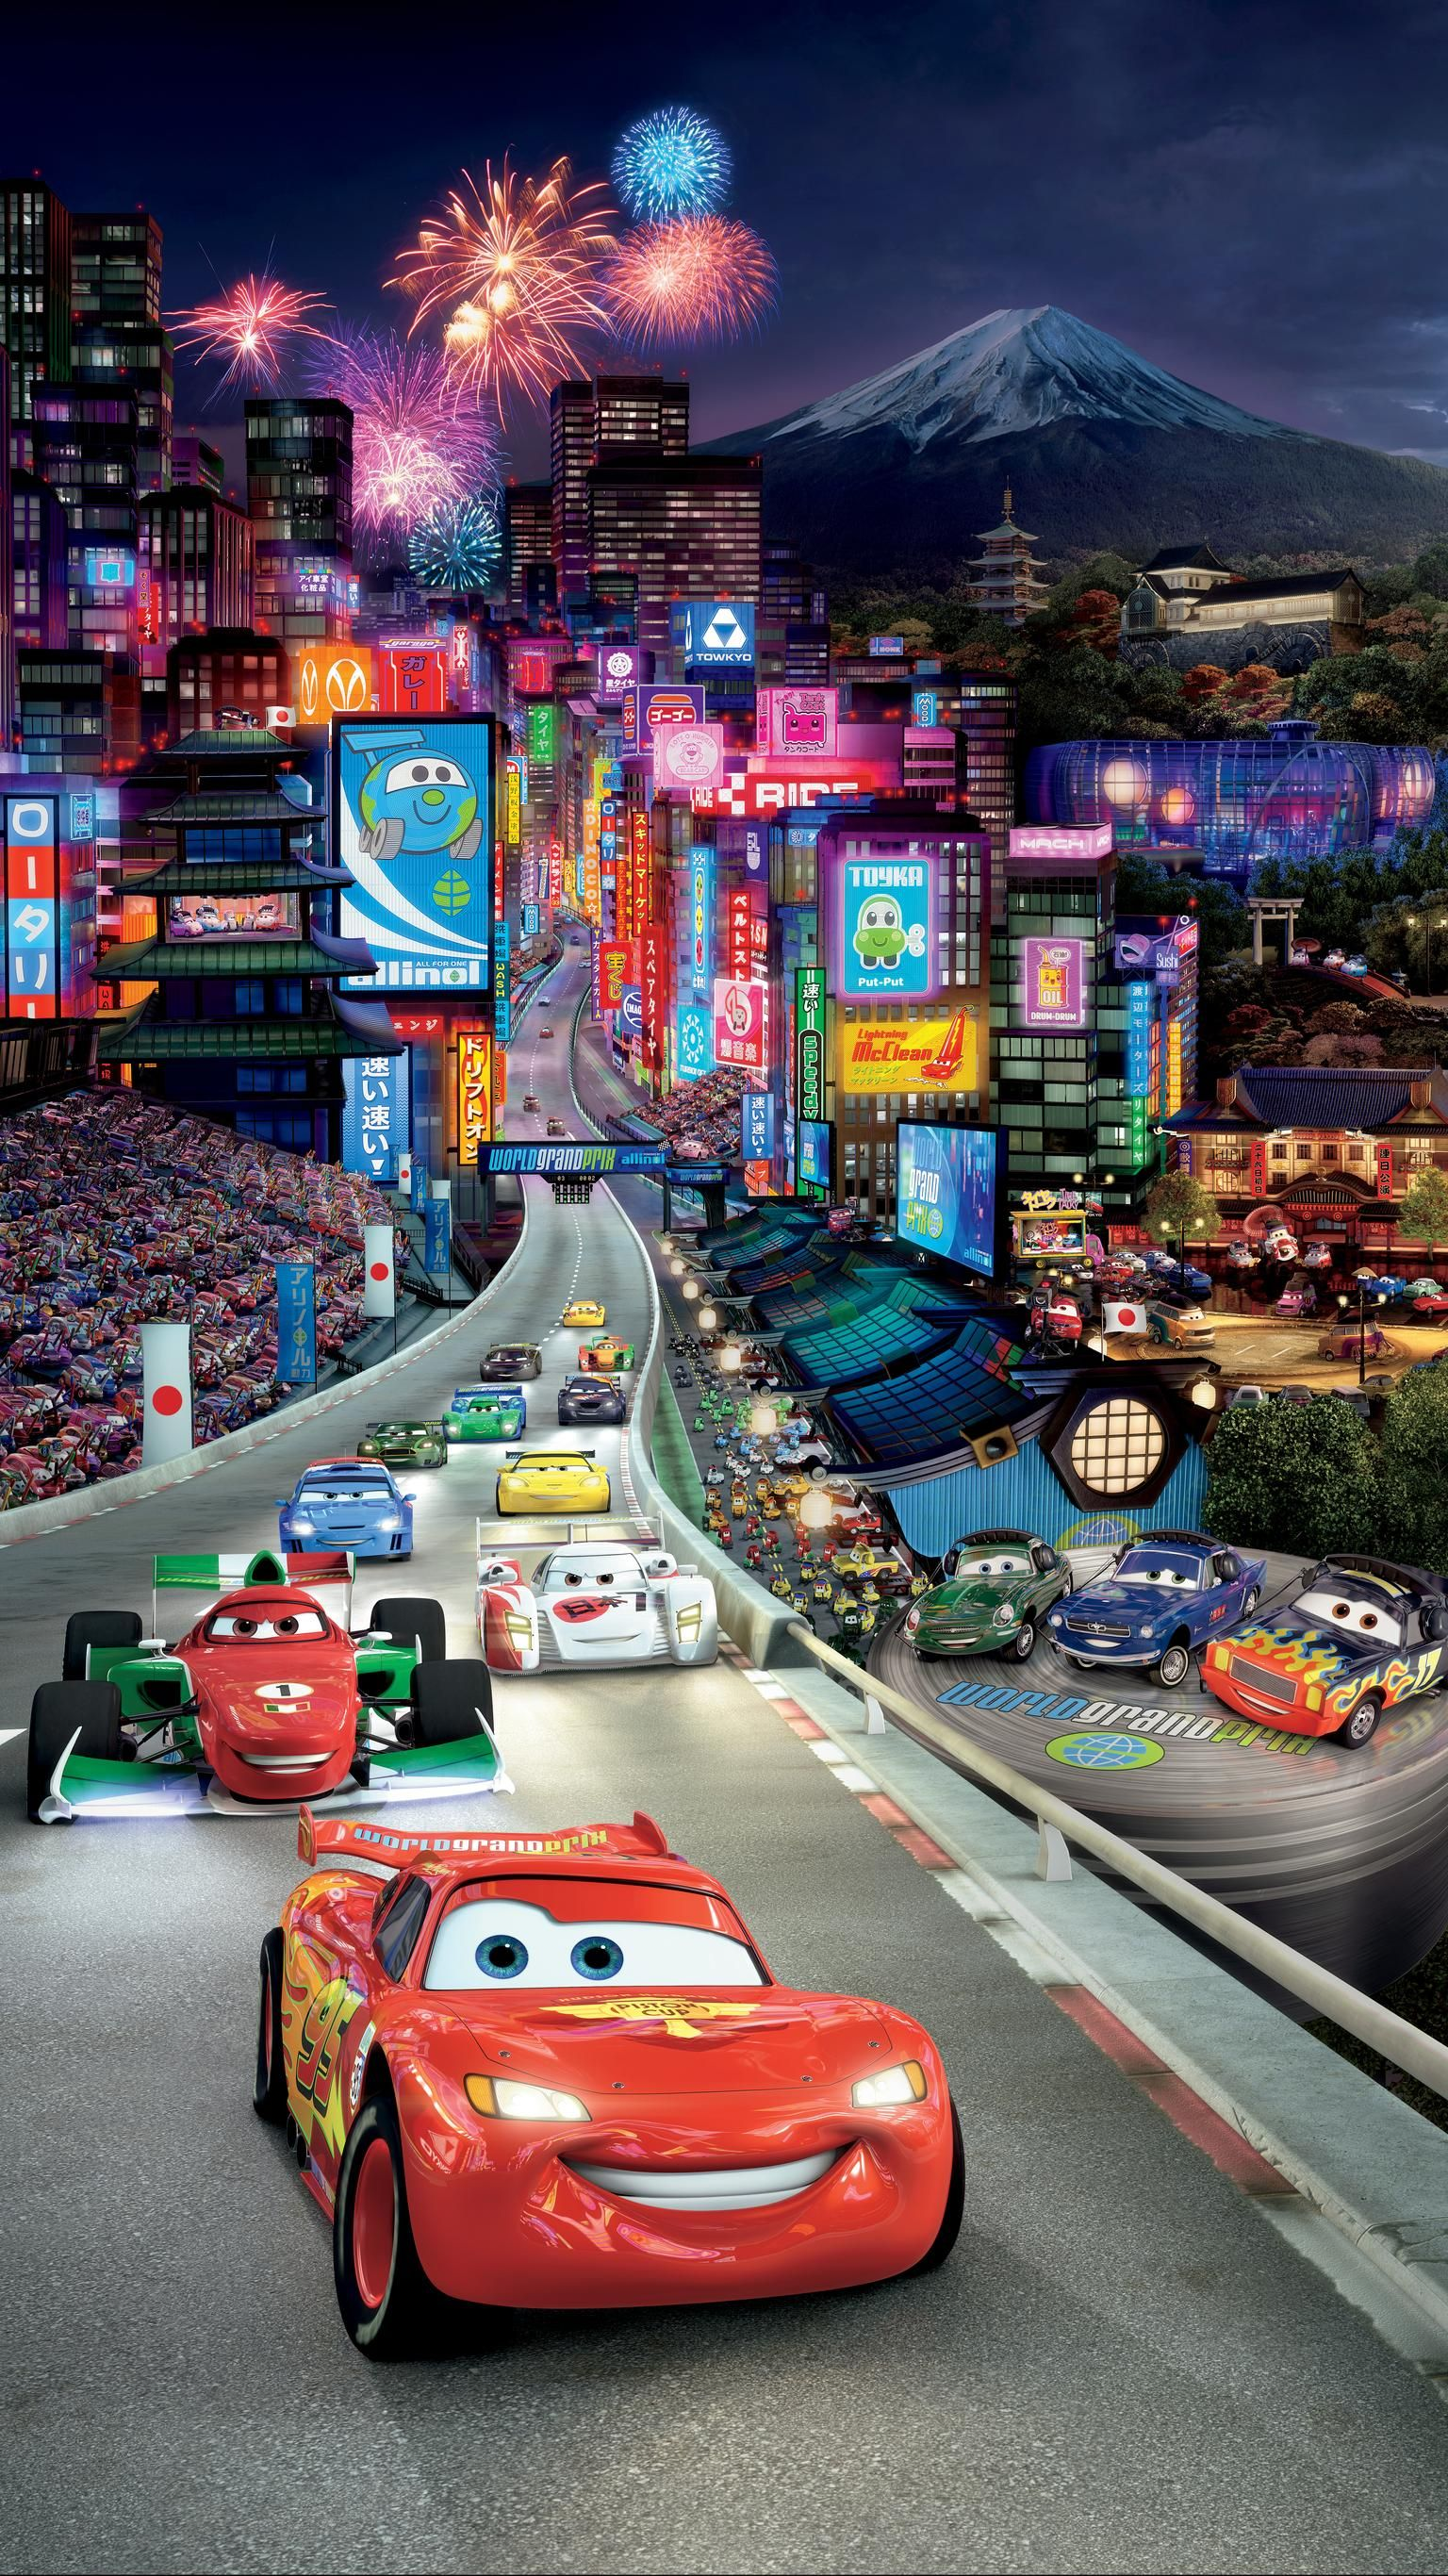 Cars 2 2011 Phone Wallpaper Carros Da Disney Aniversario